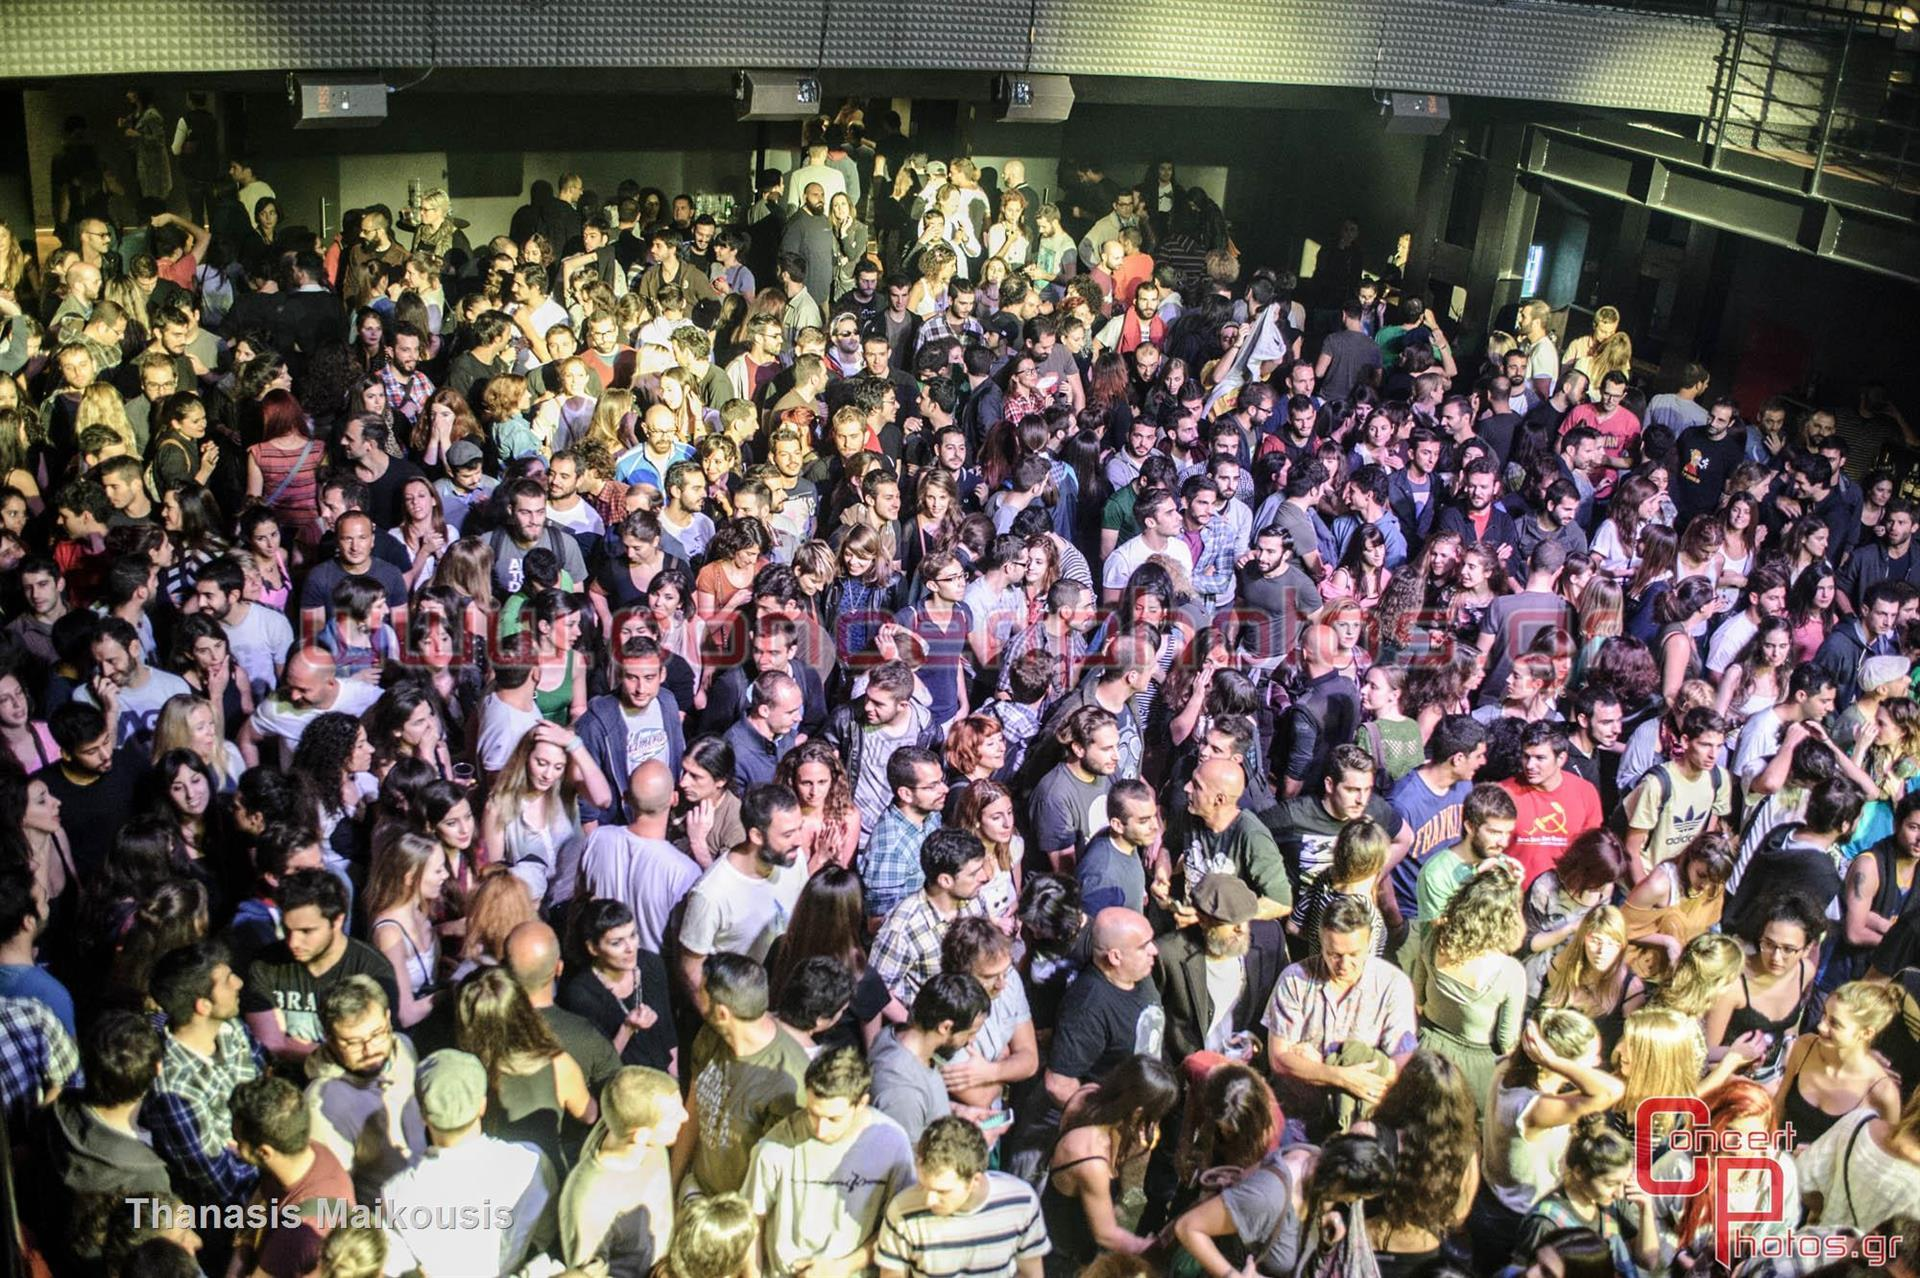 Wax Tailor - photographer: Thanasis Maikousis - ConcertPhotos-8323